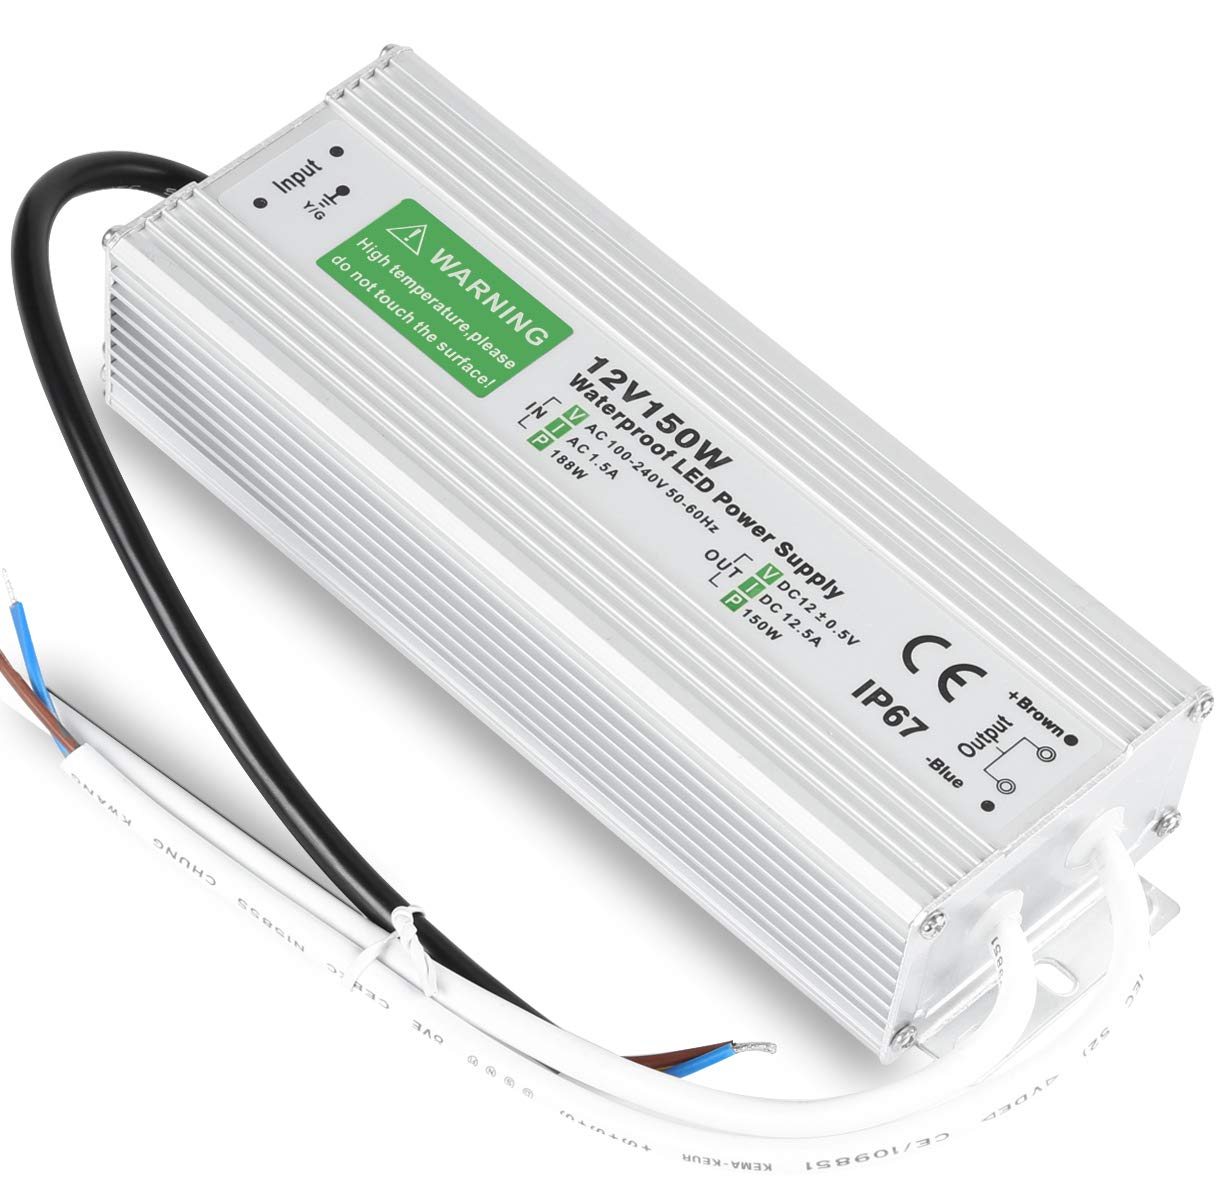 150W LED Driver Transformer 12 V DC Power Supply Waterproof IP67 Feet Cable LED Striplight Accessories